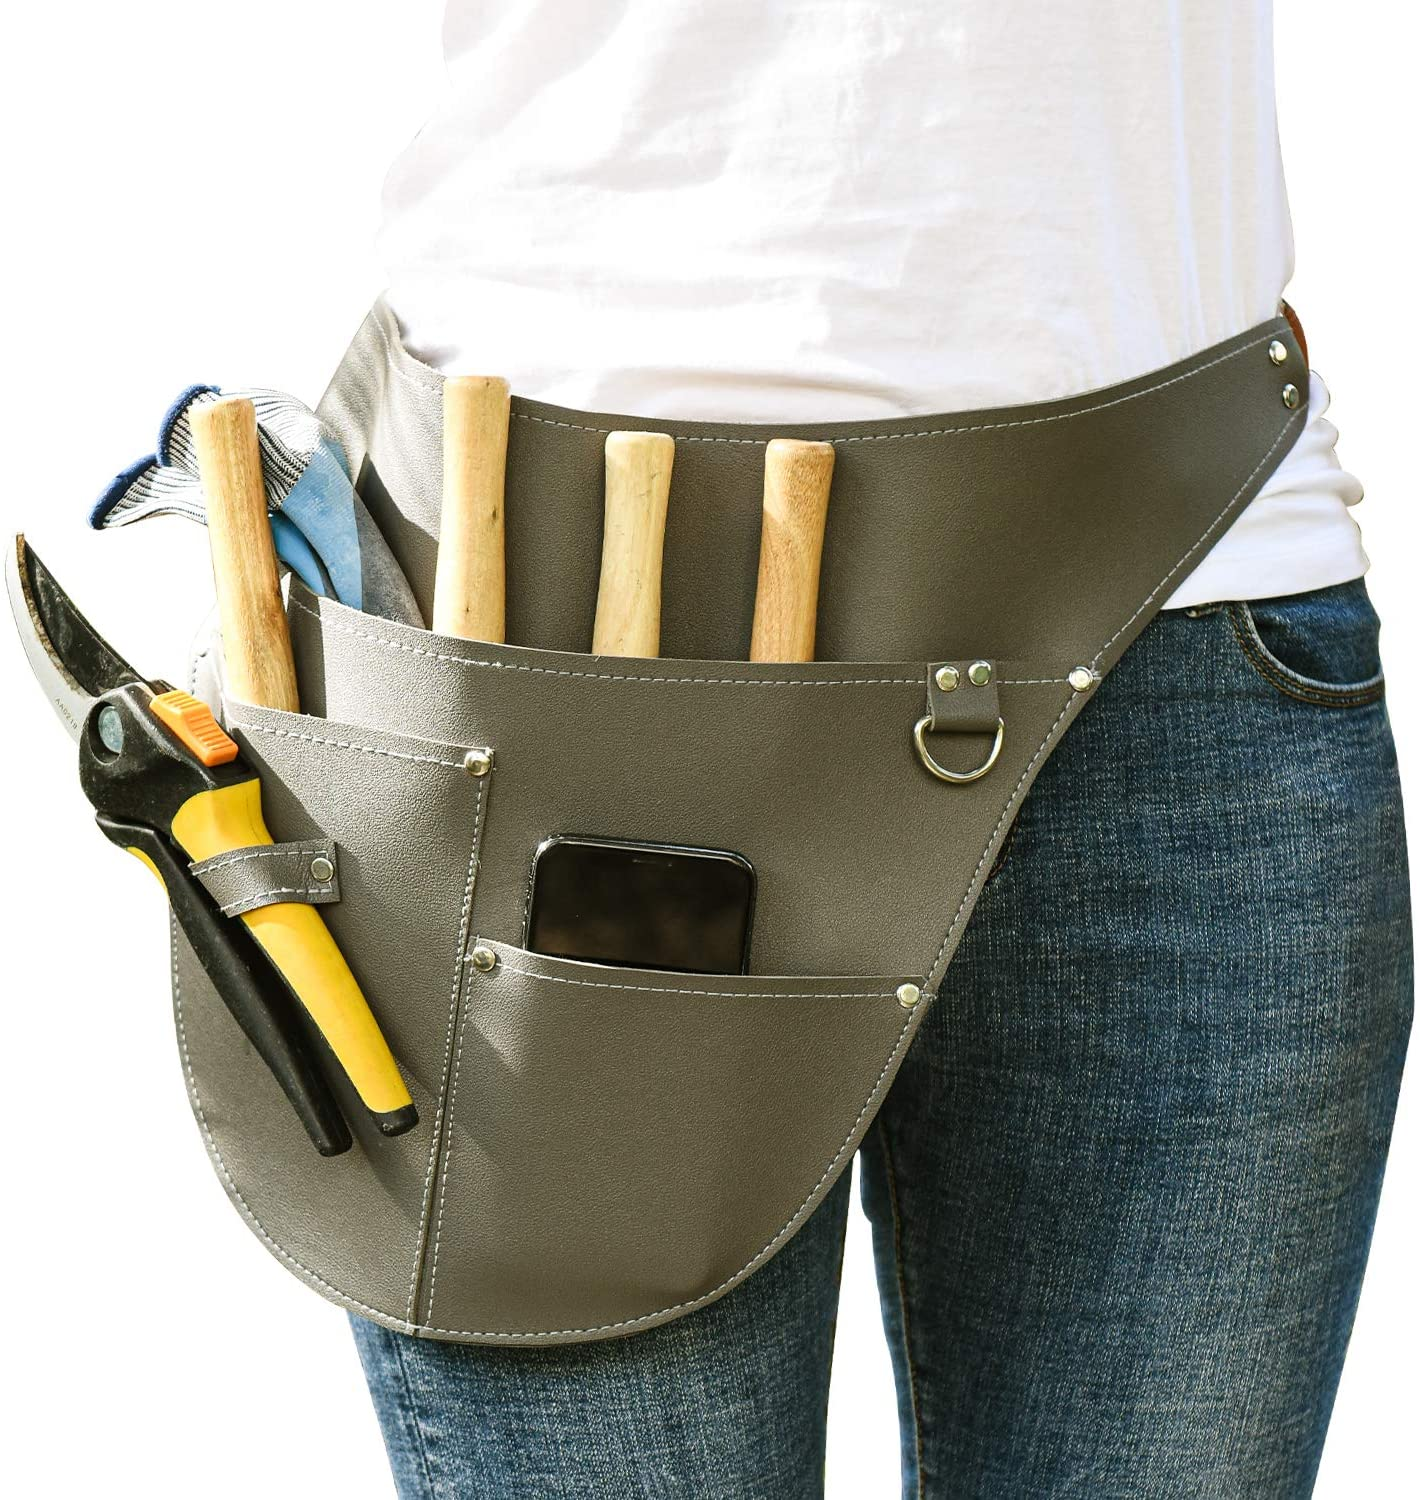 2021 Newest Garden Tool Belt, Gardening Tool Apron, Adjustable Tool Waist Pouch, Gardening Tools Belt Bag, Tool Pouch for Arts Gardening Utility or Work, Tool Belt for Men and Women